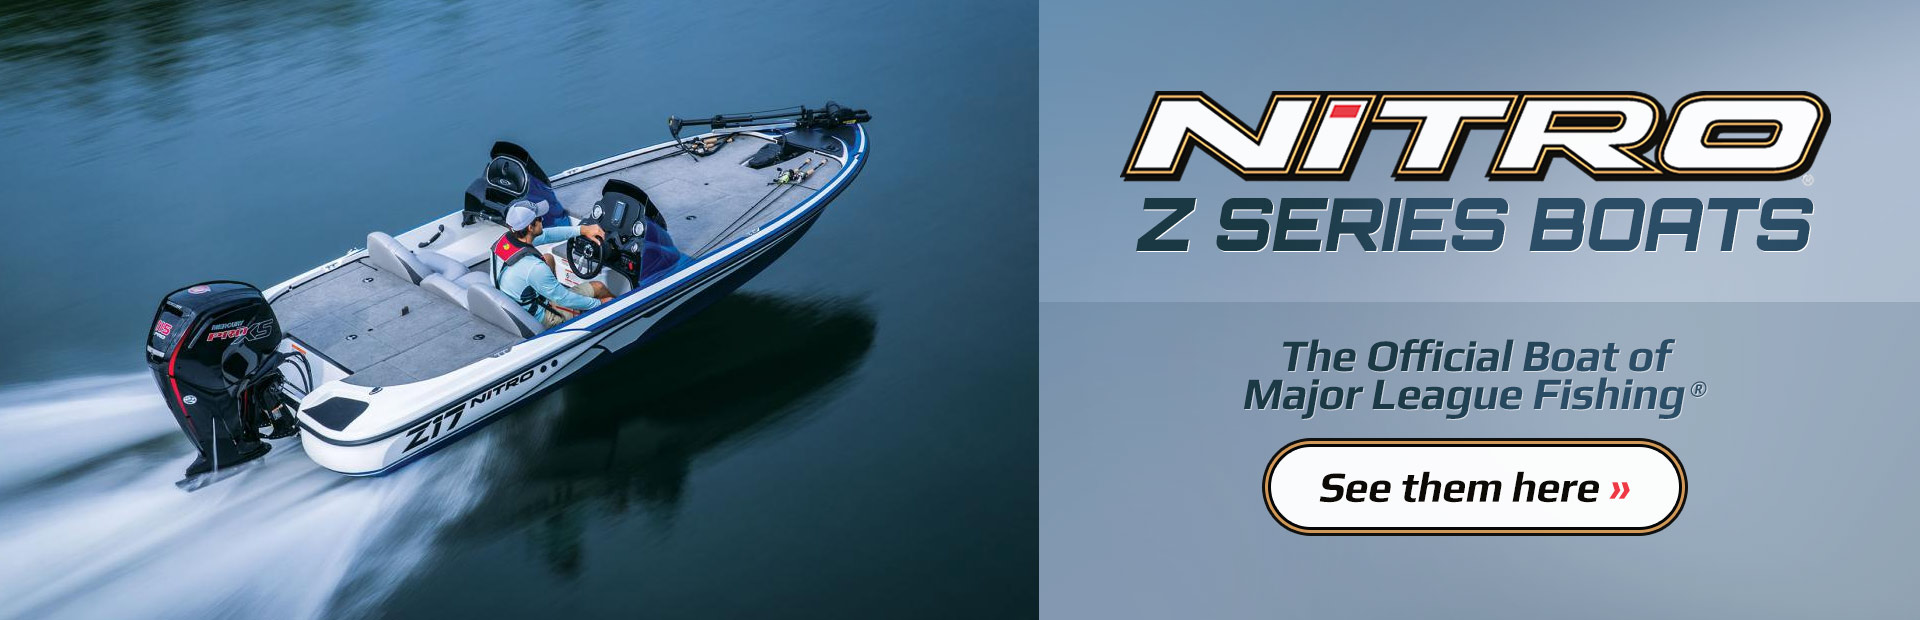 Nitro Z Series Boats: Click here to view the models.